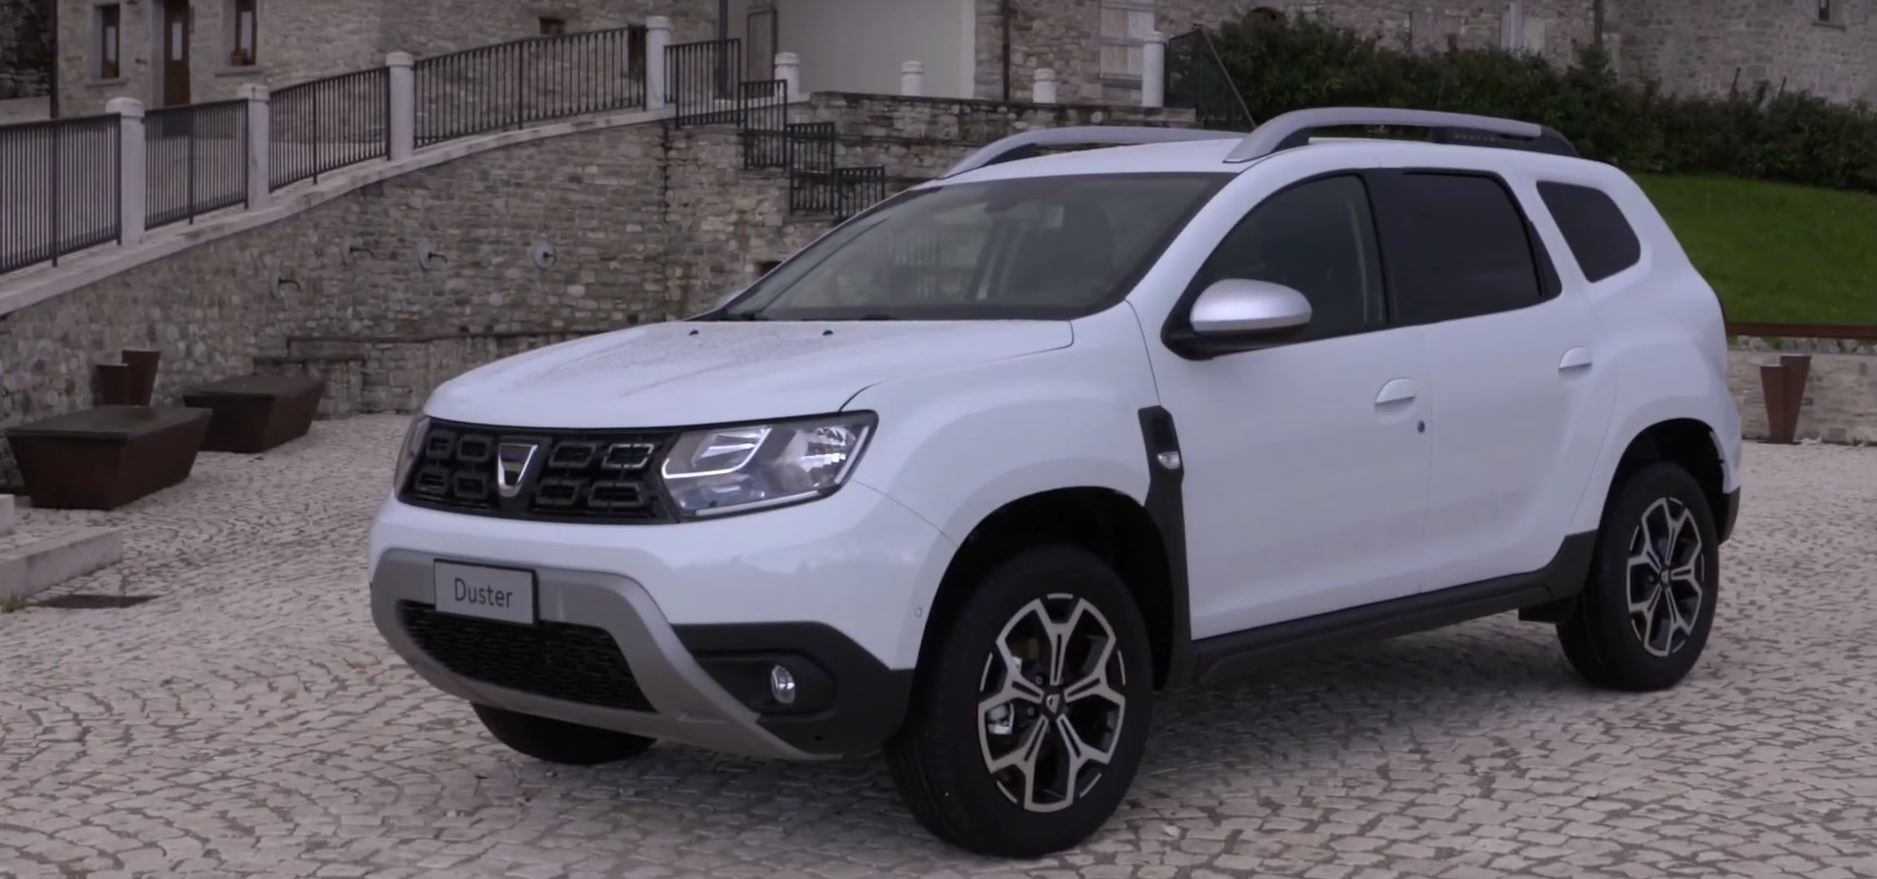 dacia duster and renault twingo get lpg engines. Black Bedroom Furniture Sets. Home Design Ideas